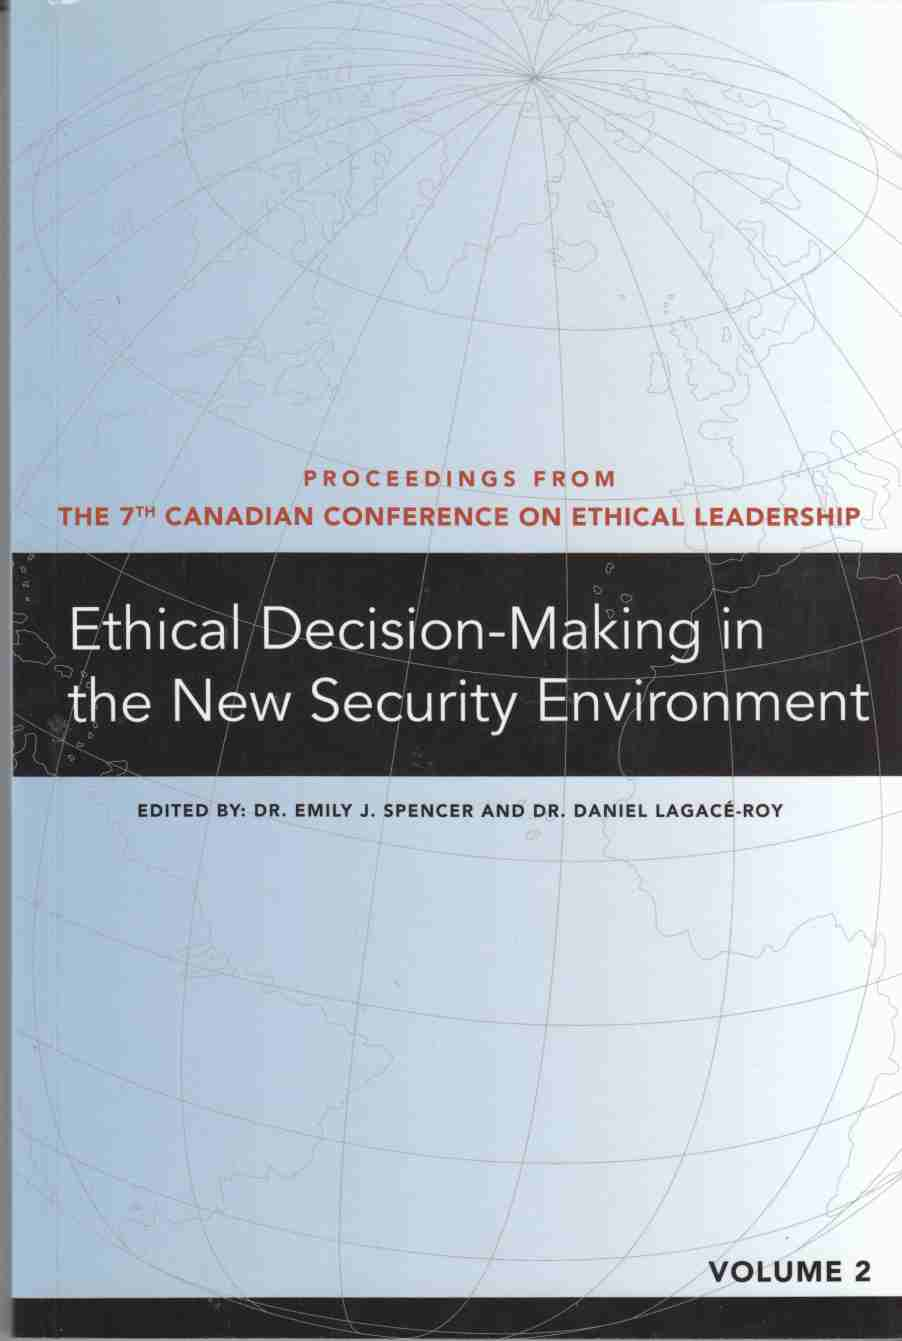 Image for Ethical Decision-Making in the New Security Environment Proceedings from the 7th Canadian Conference on Ethical Leadership Volume 2